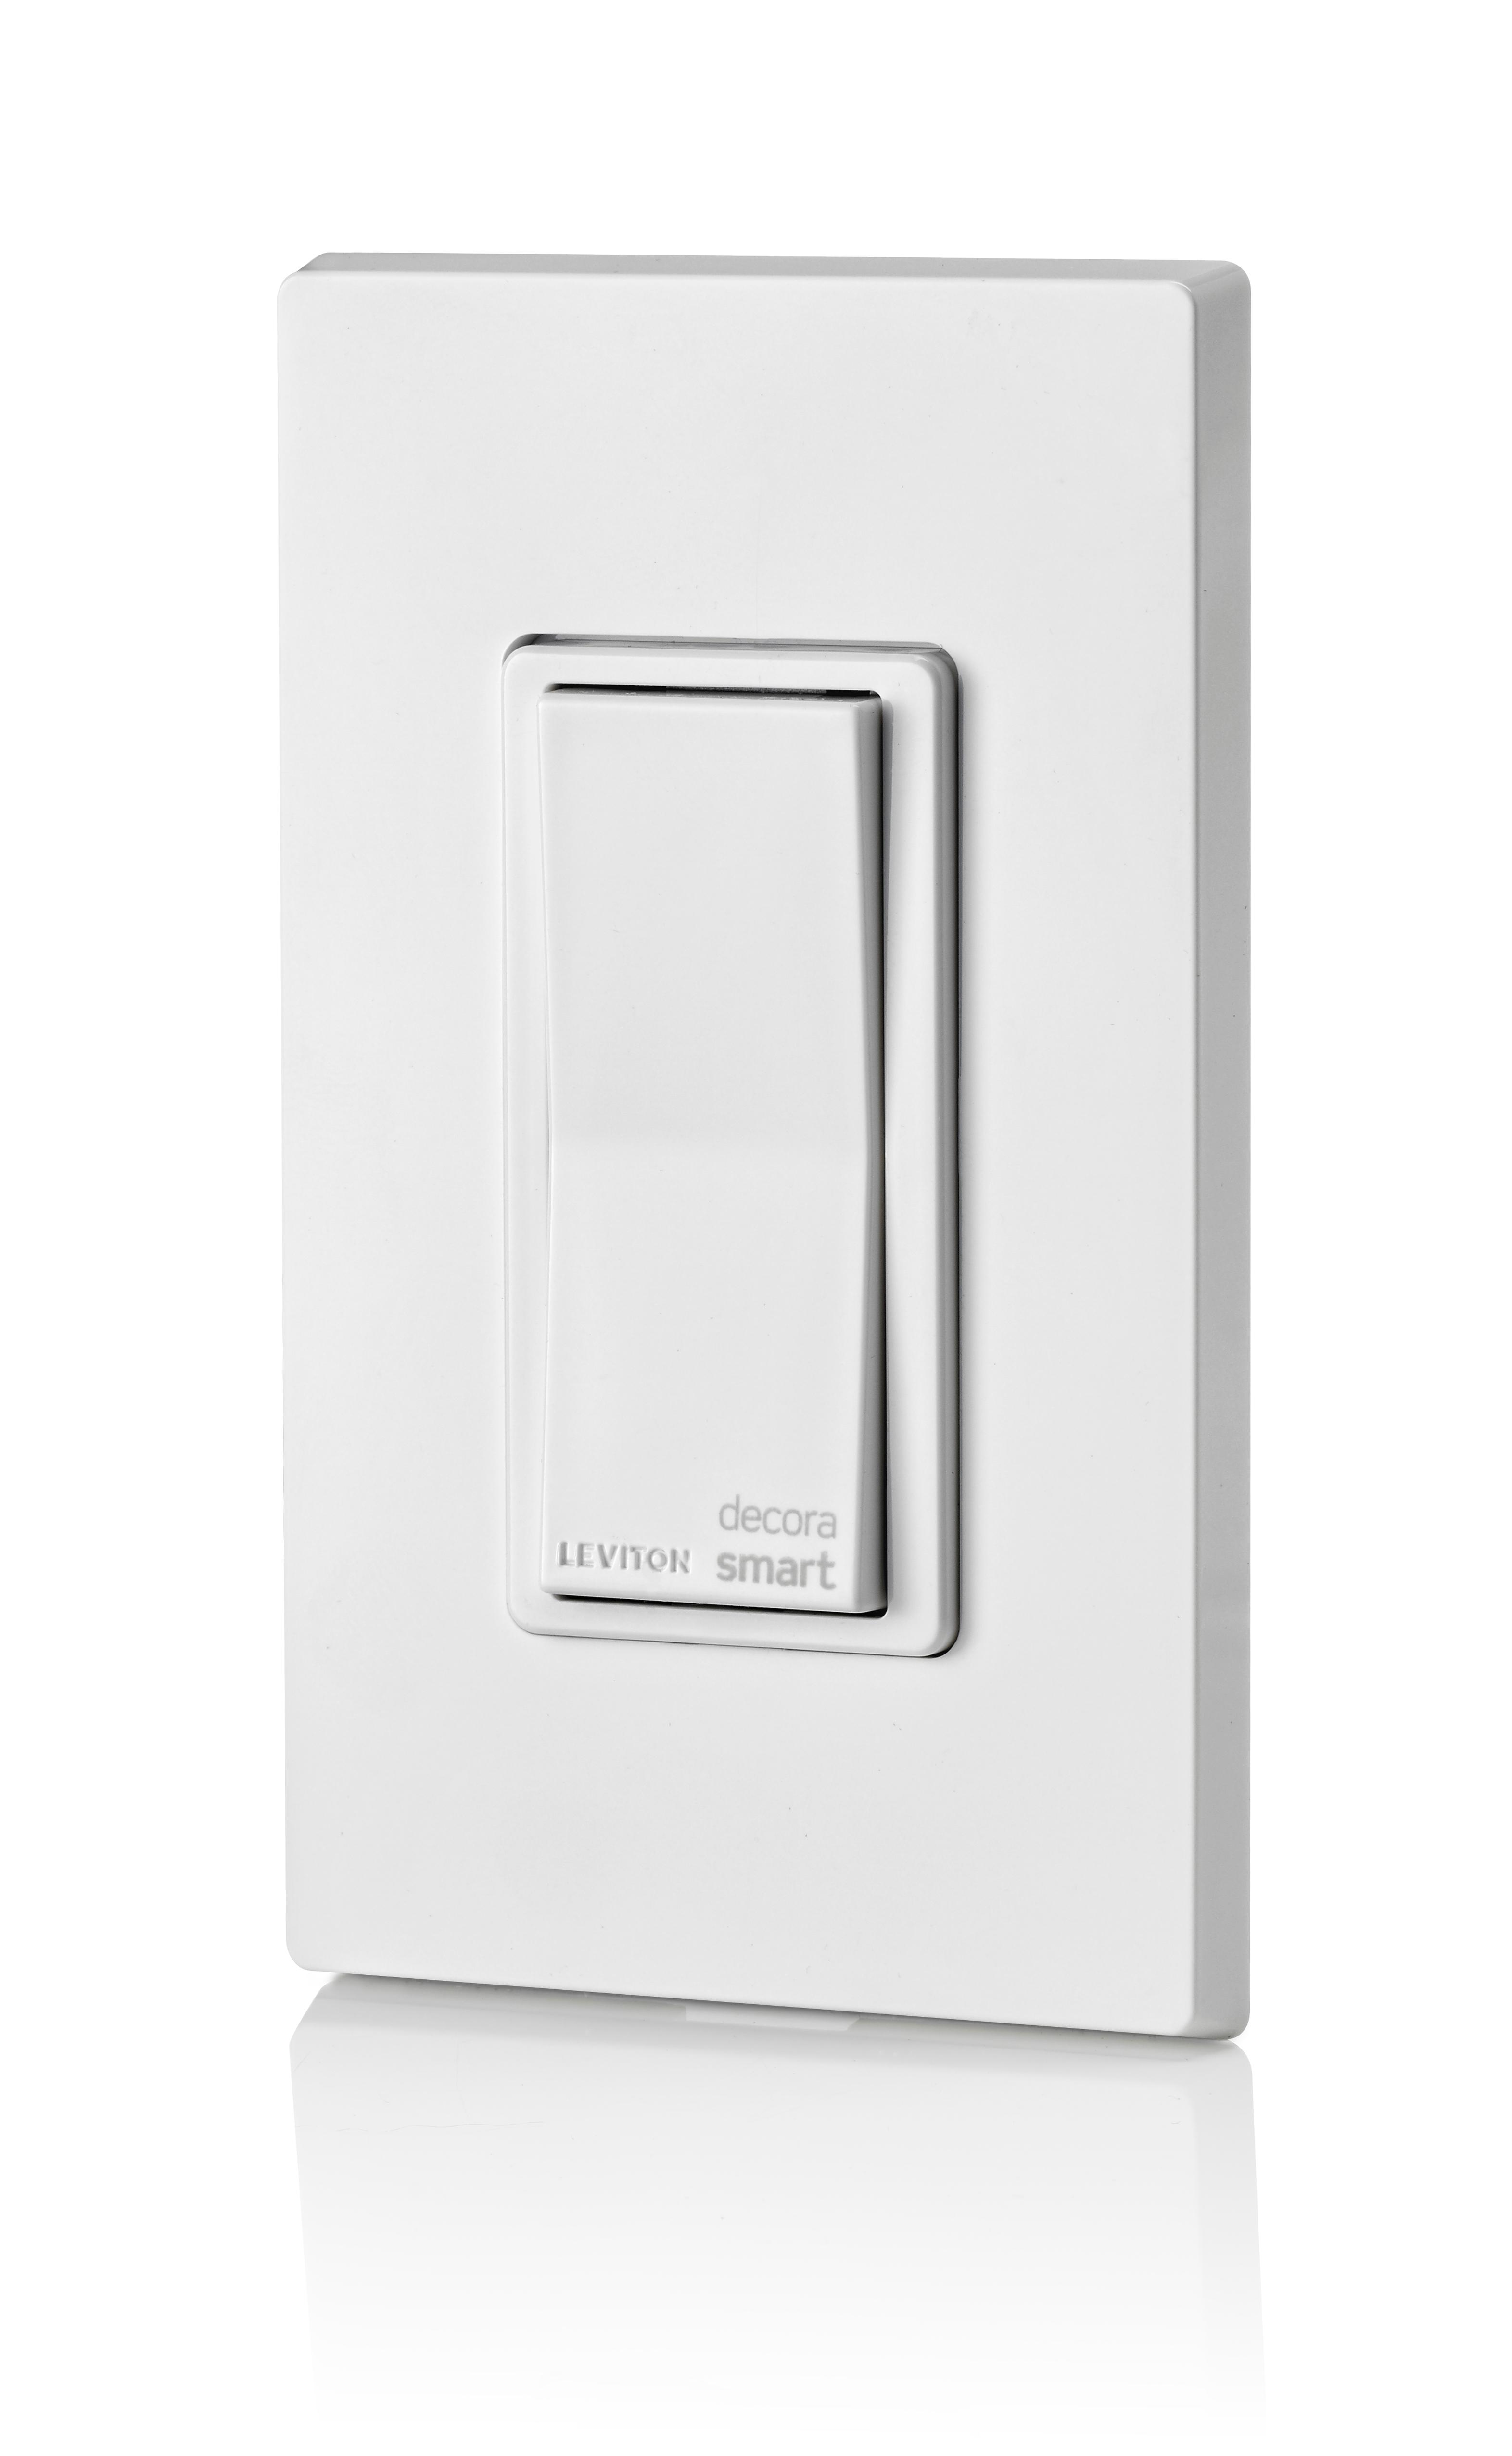 Leviton Dh15s 1bz 15a Decora Smart Switch Works With Apple Homekit Home Gt Switches 4 Way View Larger